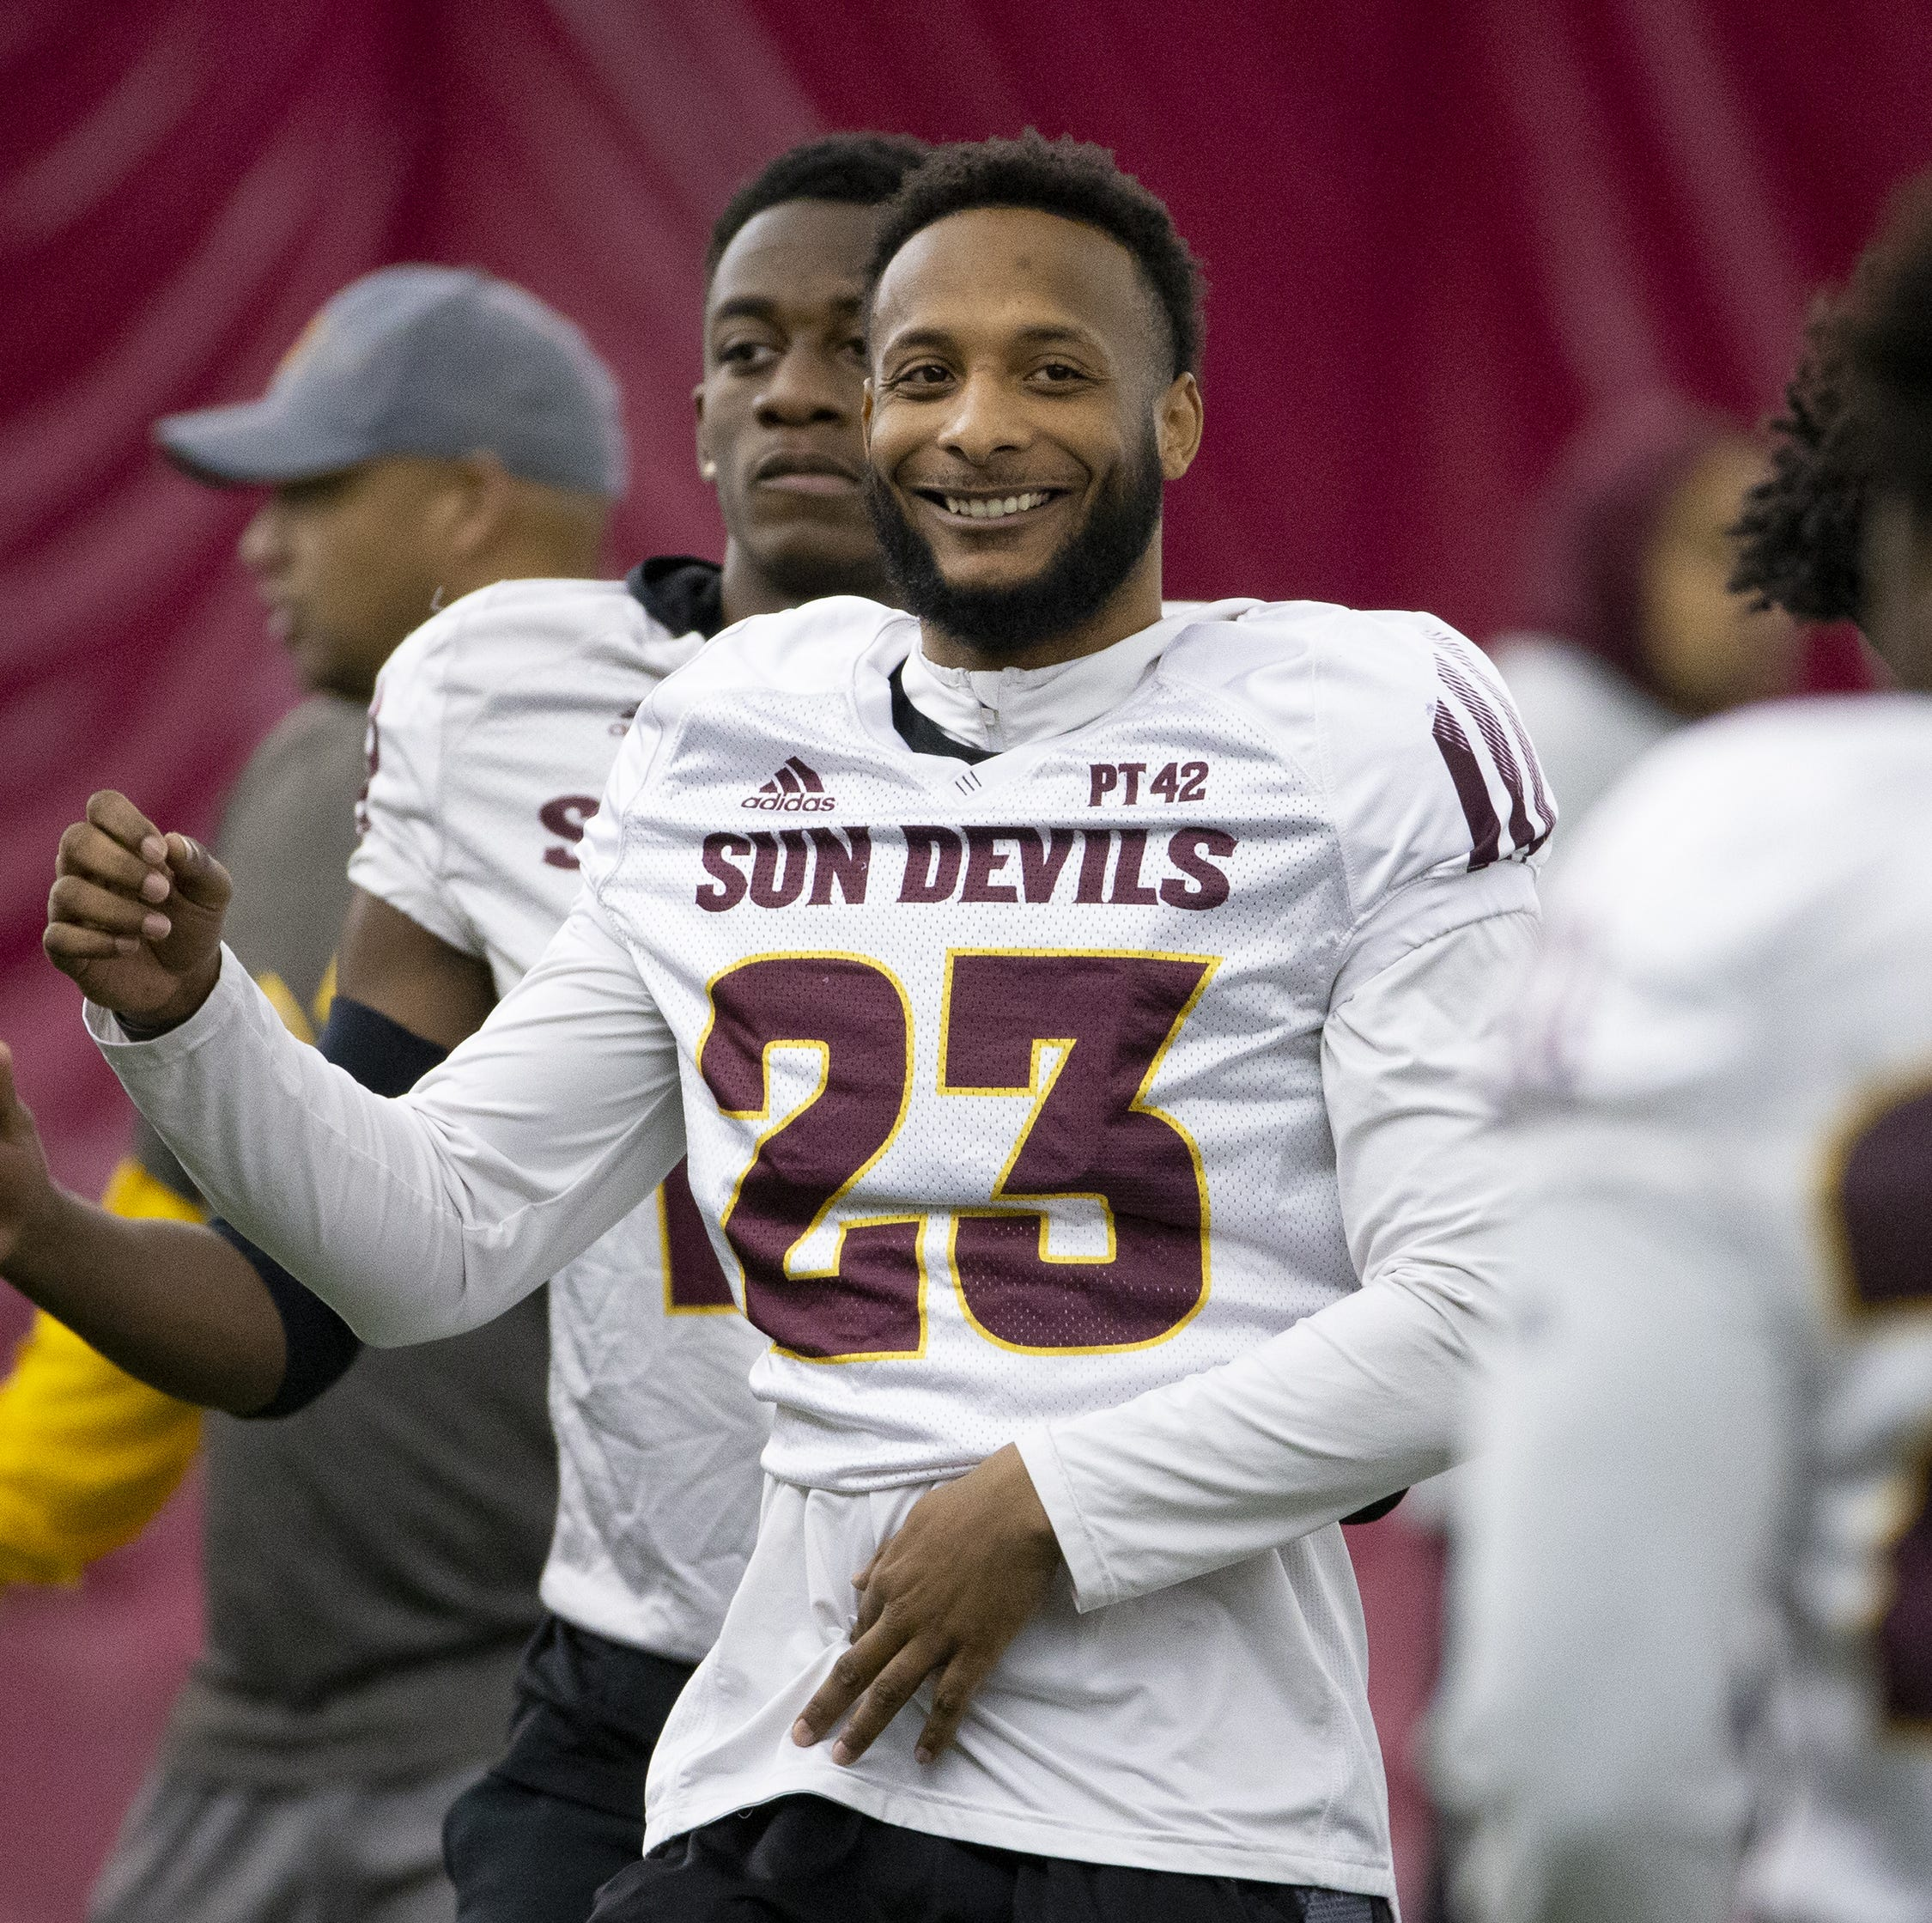 ASU football practice report: Tyler Whiley granted sixth year of eligibility by NCAA